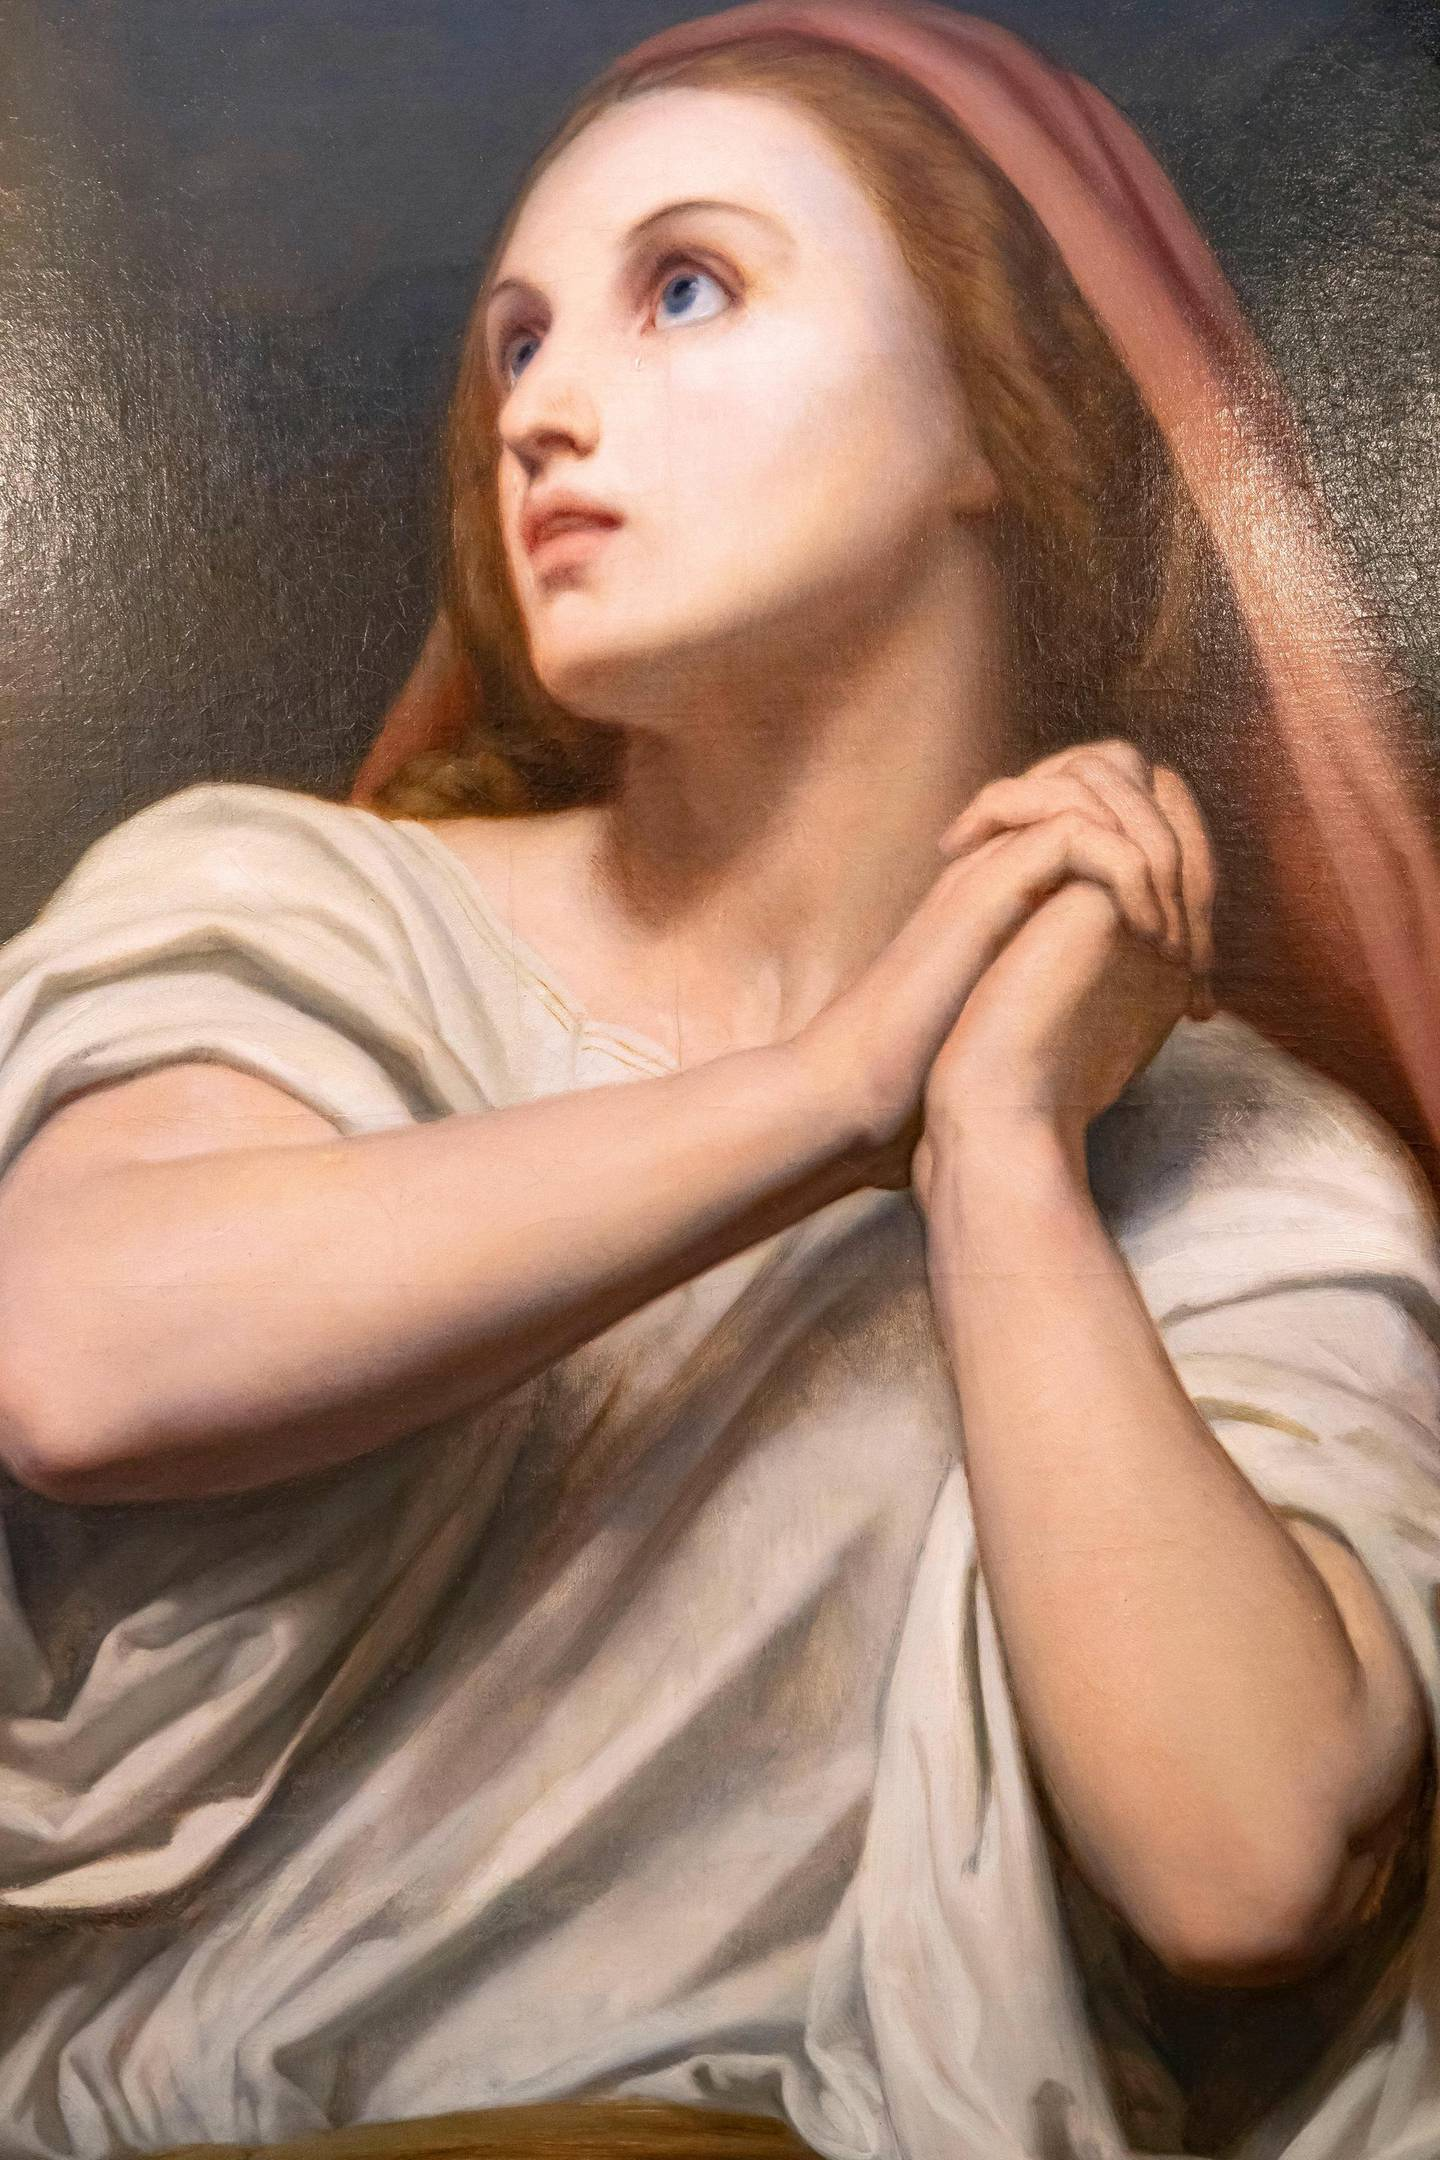 Abu Dhabi, United Arab Emirates - July 18, 2019: Presentation of the Masterpiece Mary Magdalene in Ecstasy, painted by Ary Scheffer, to Dr Hamed Bin Mohamed Khalifa Al Suwaidi, Chairman of Abu Dhabi Arts Society by Alan Lubin, President Emeritus of Five Islands Capital Limited of London, as a Loan in Perpetuity to the Emirate of Abu Dhabi, on behalf of the Lubin Family Art Collection Privé. Thursday the 18th of July 2019. British Embassy, Abu Dhabi. Chris Whiteoak / The National